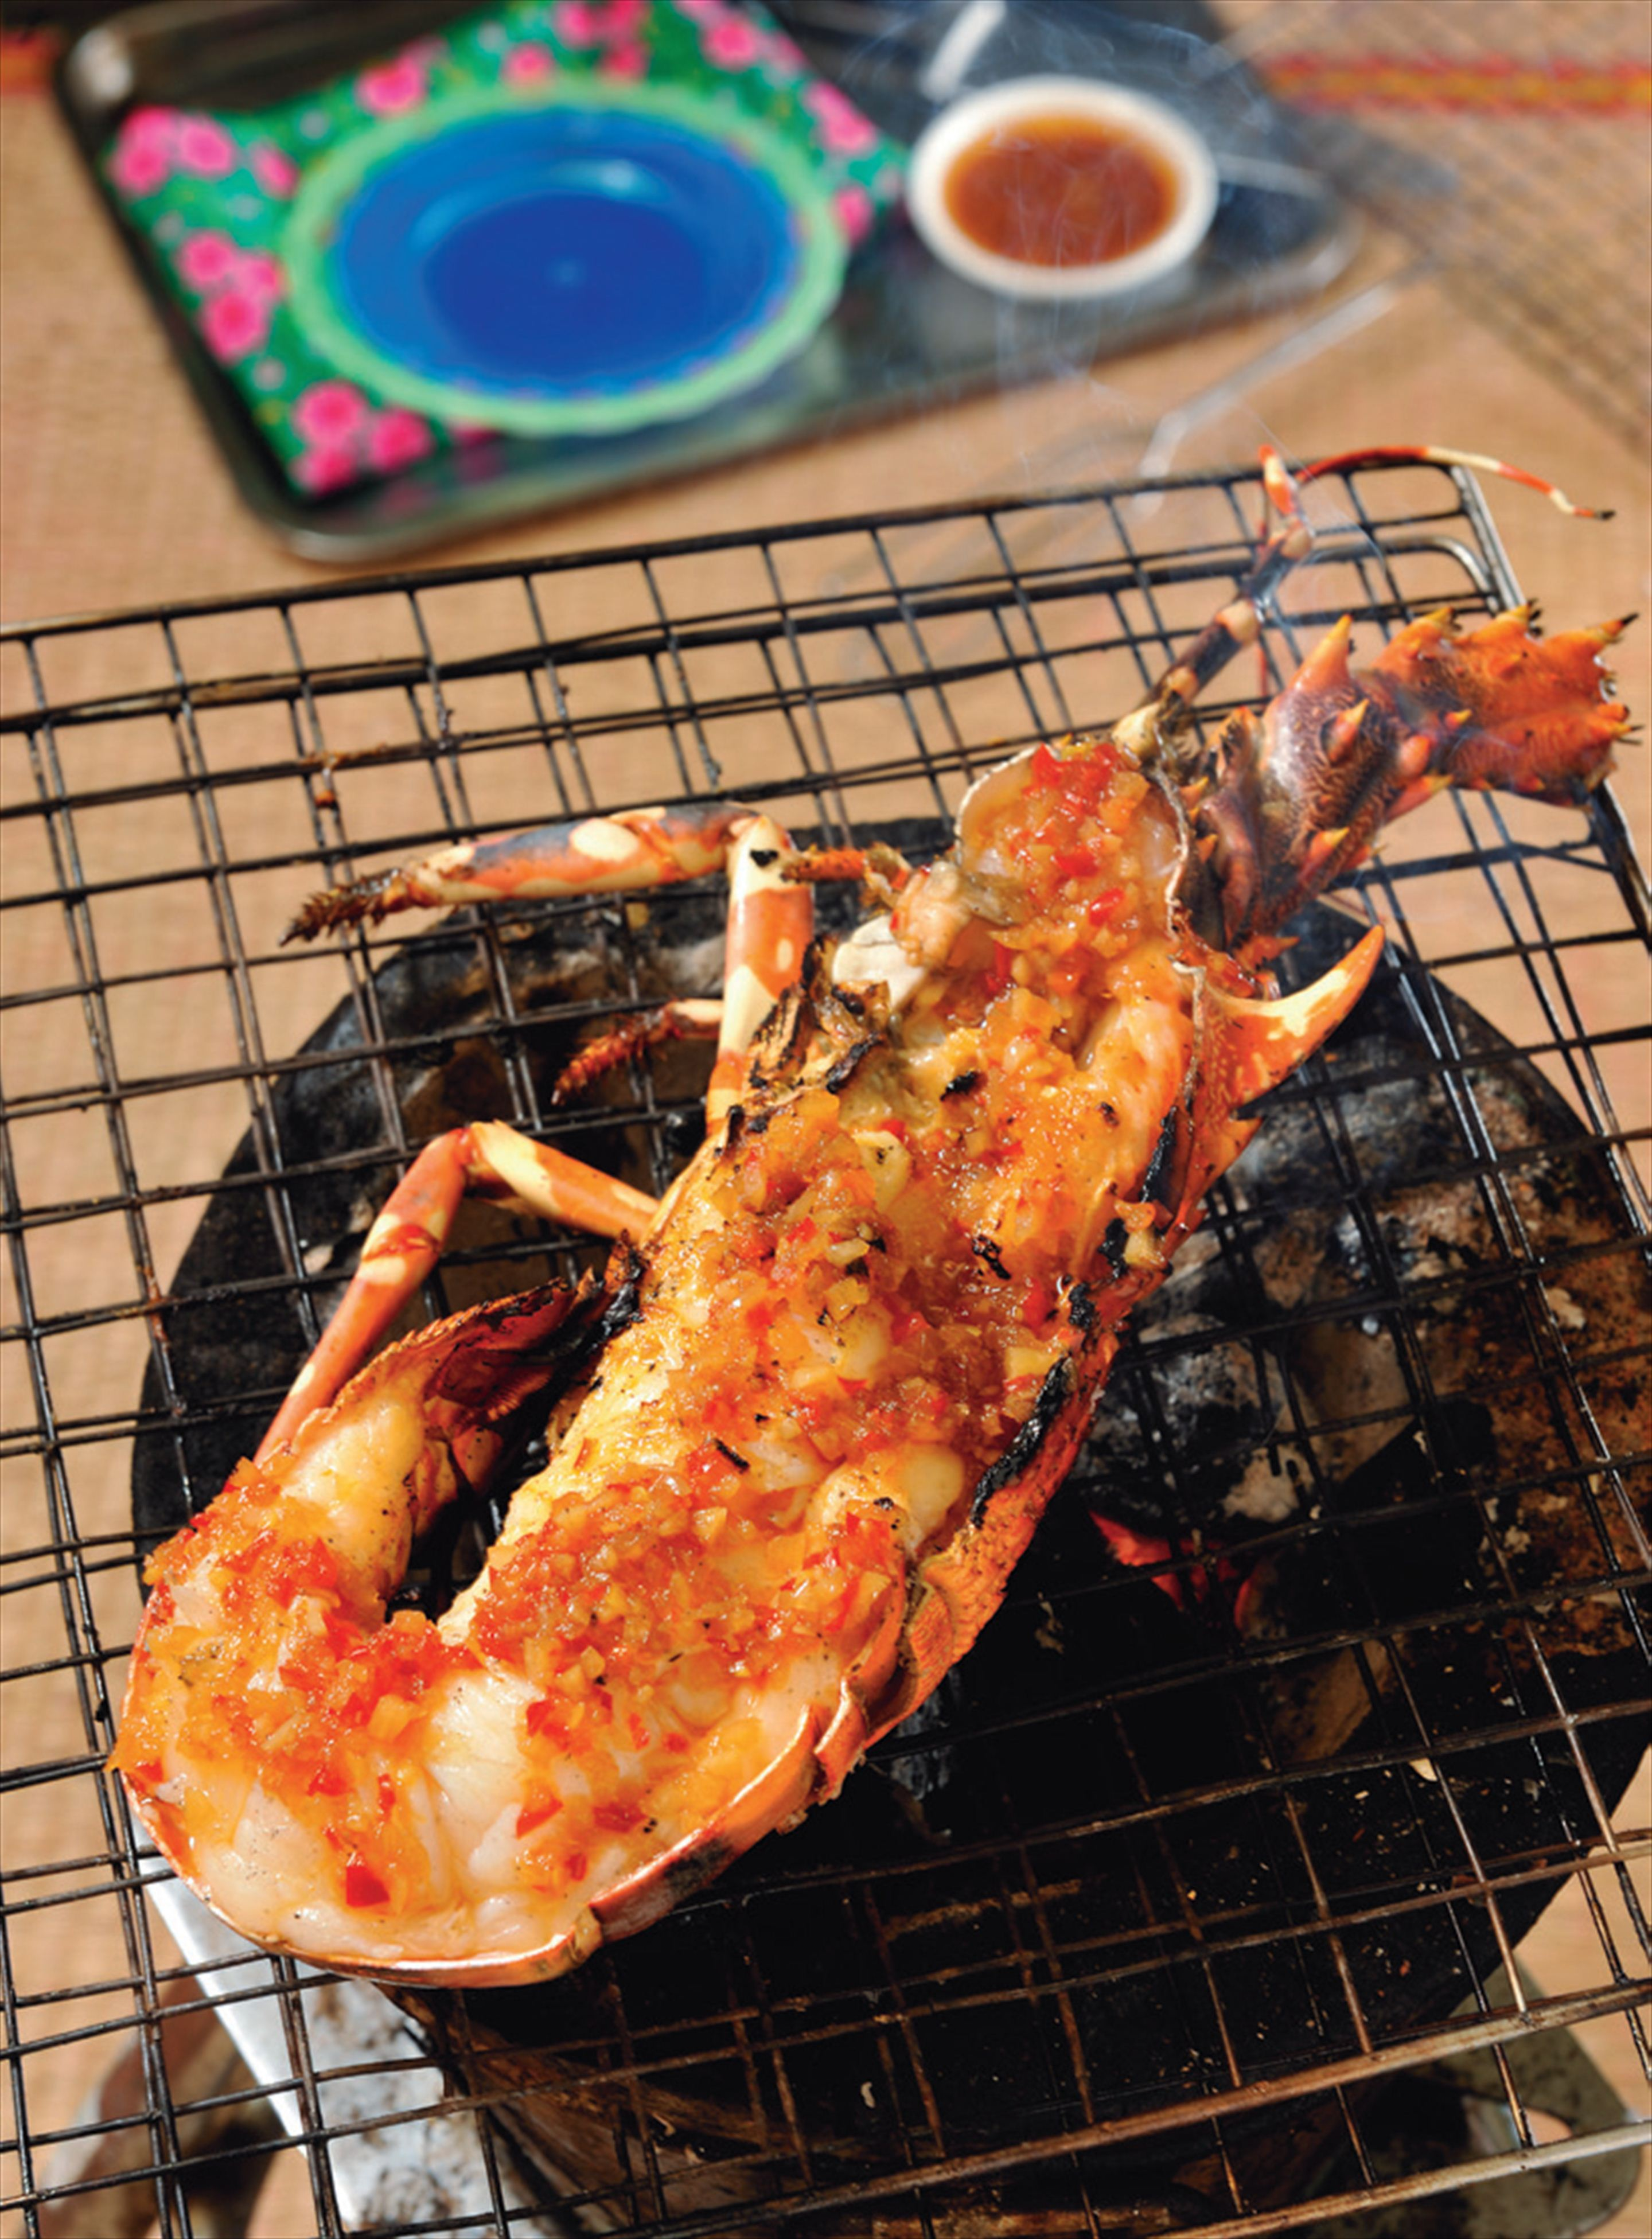 Barbecued crayfish with spicy satay sauce